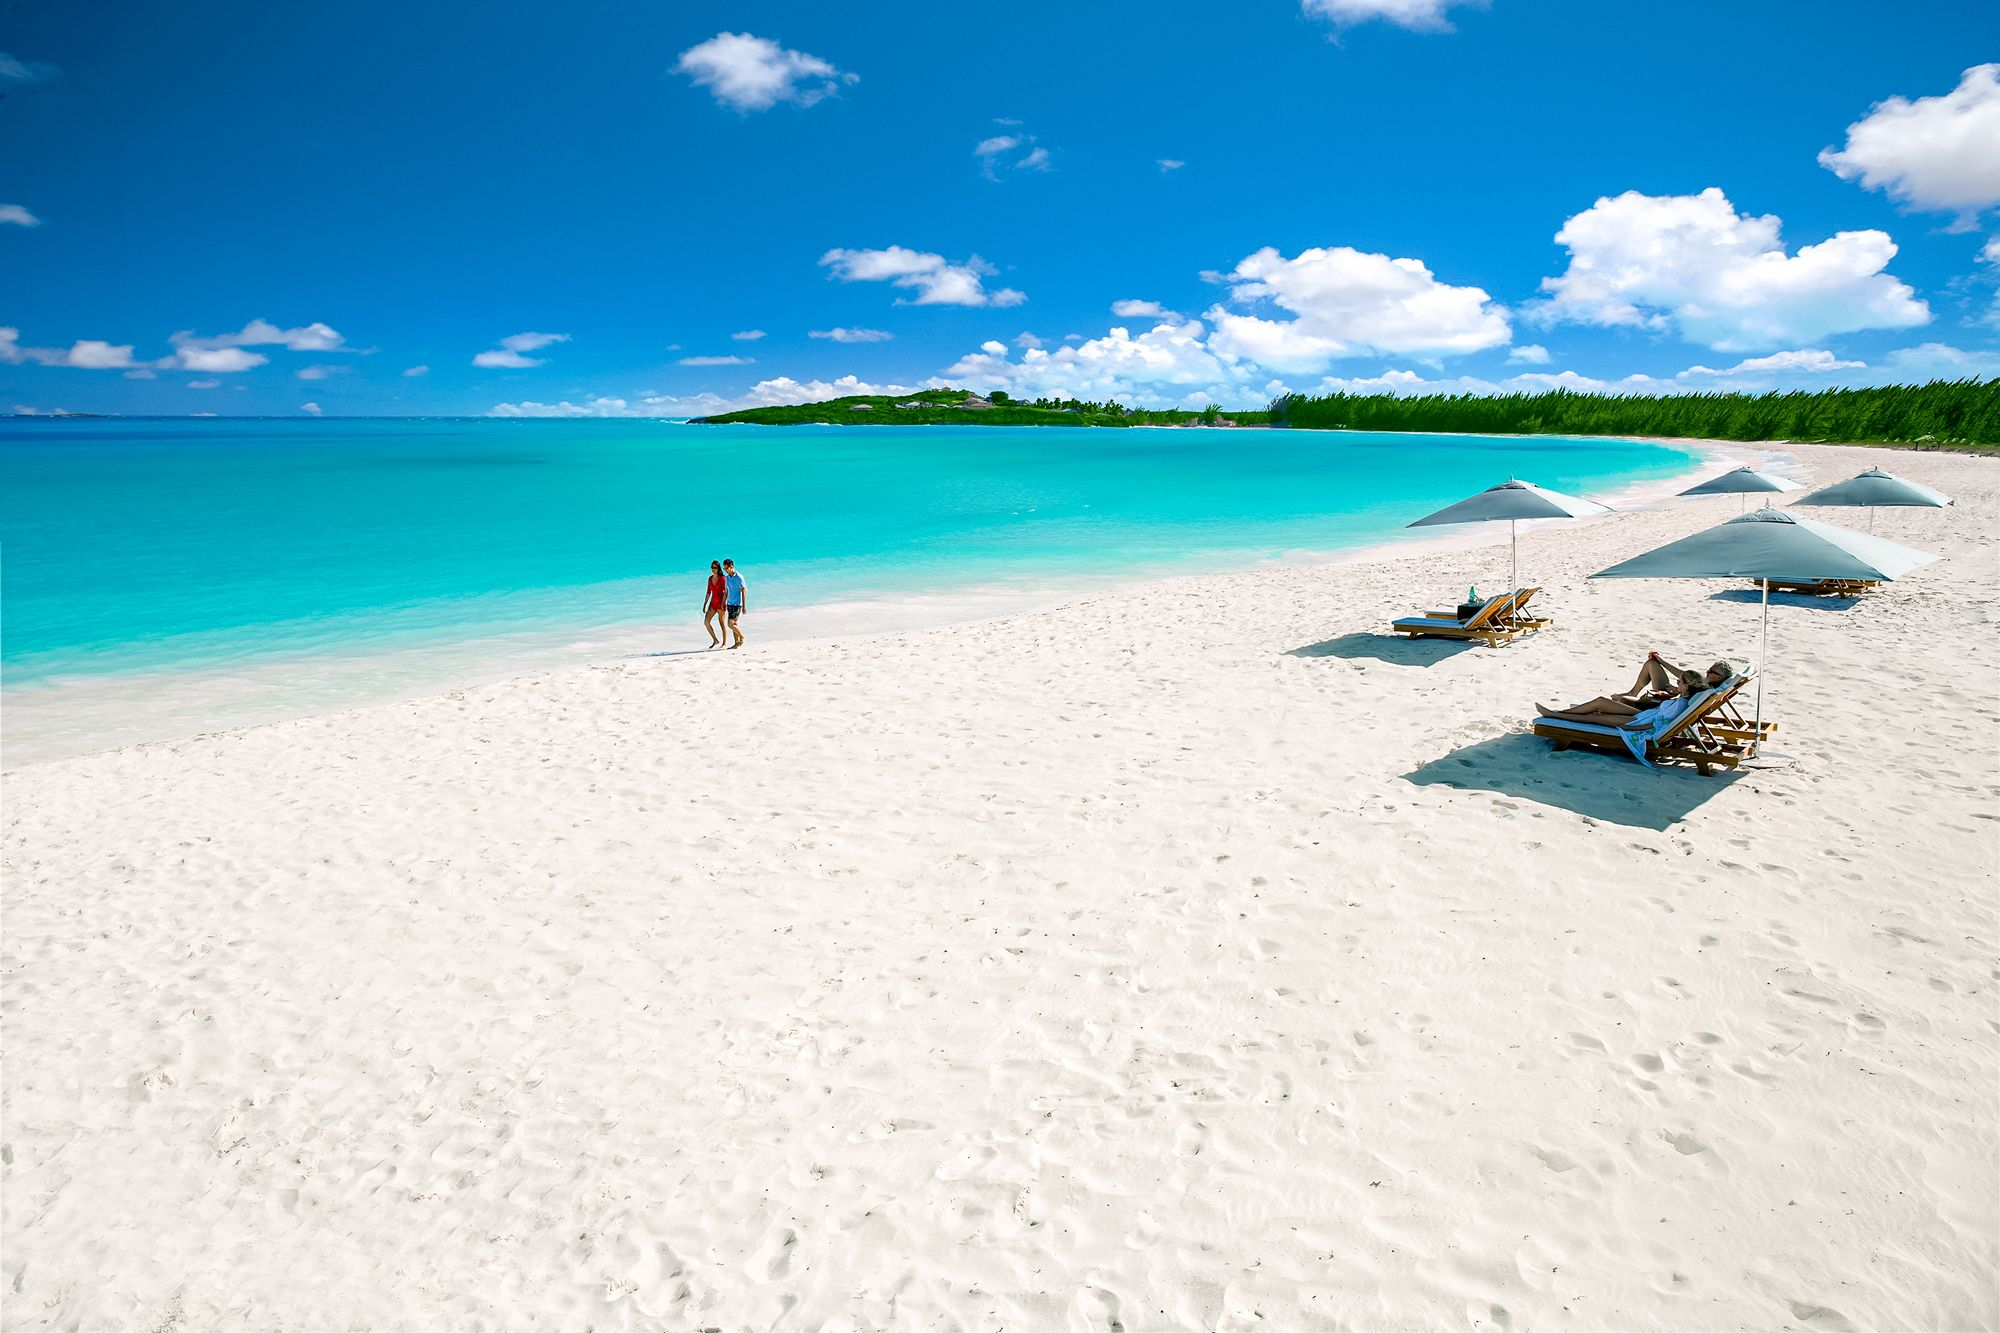 Sandals Emerald Bay White Sand Beach Couple